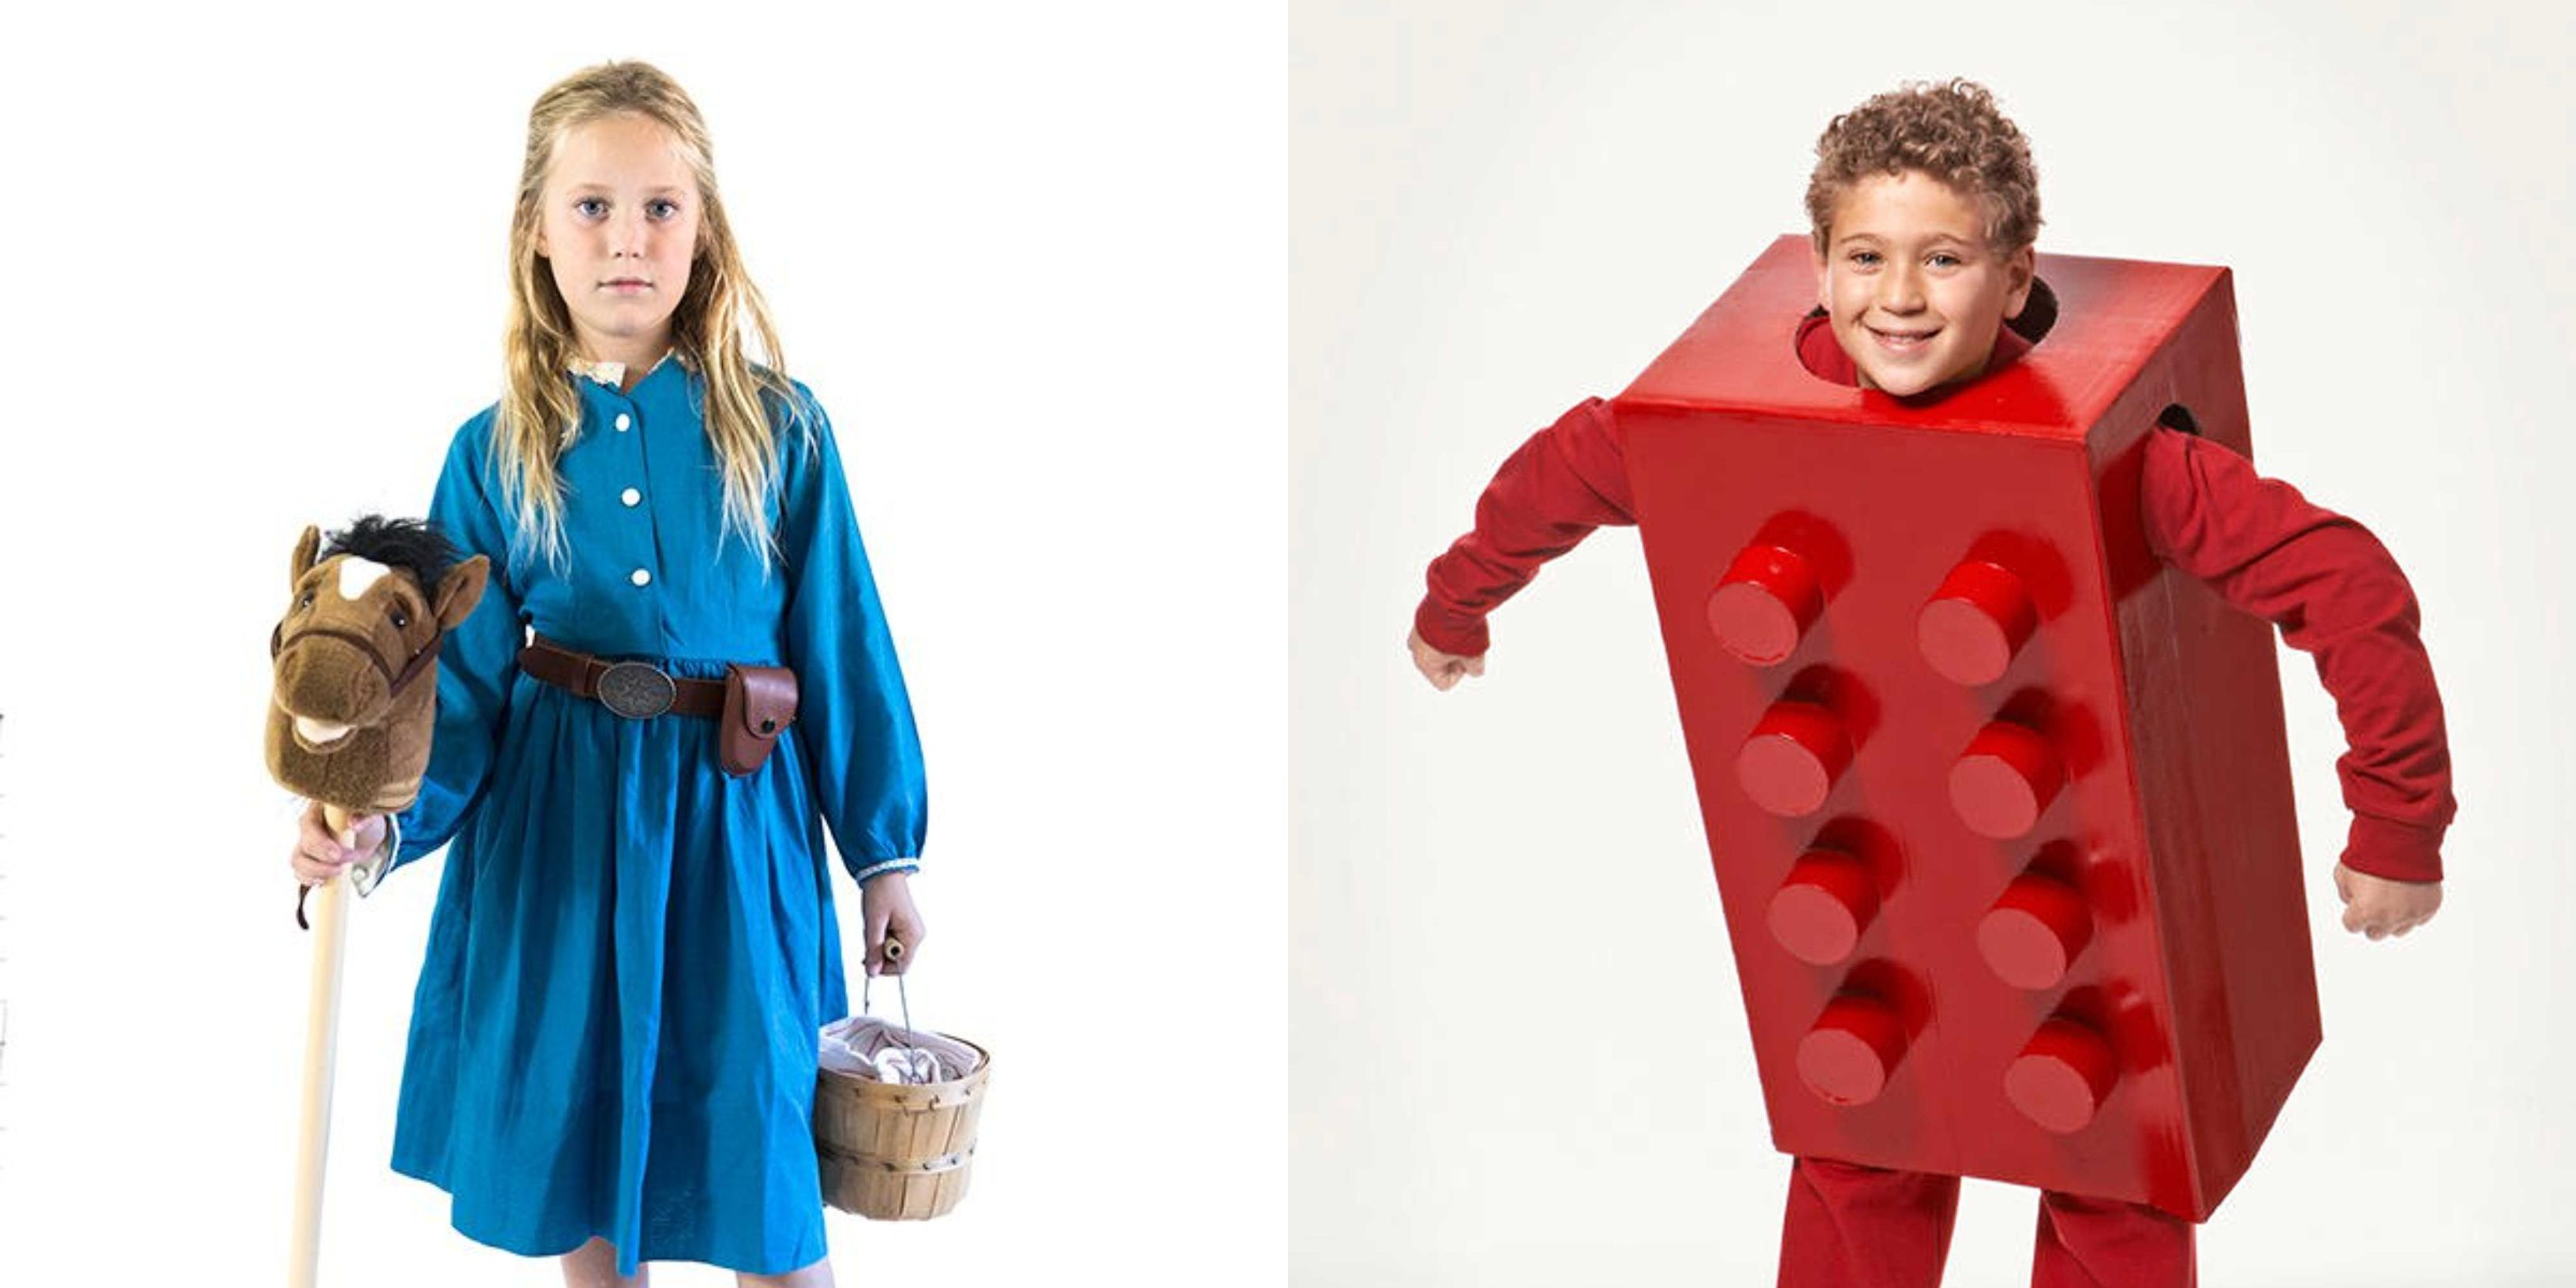 f0df42b29 90 Homemade Halloween Costumes for Kids - Easy DIY Kids Halloween Costume  Ideas 2019